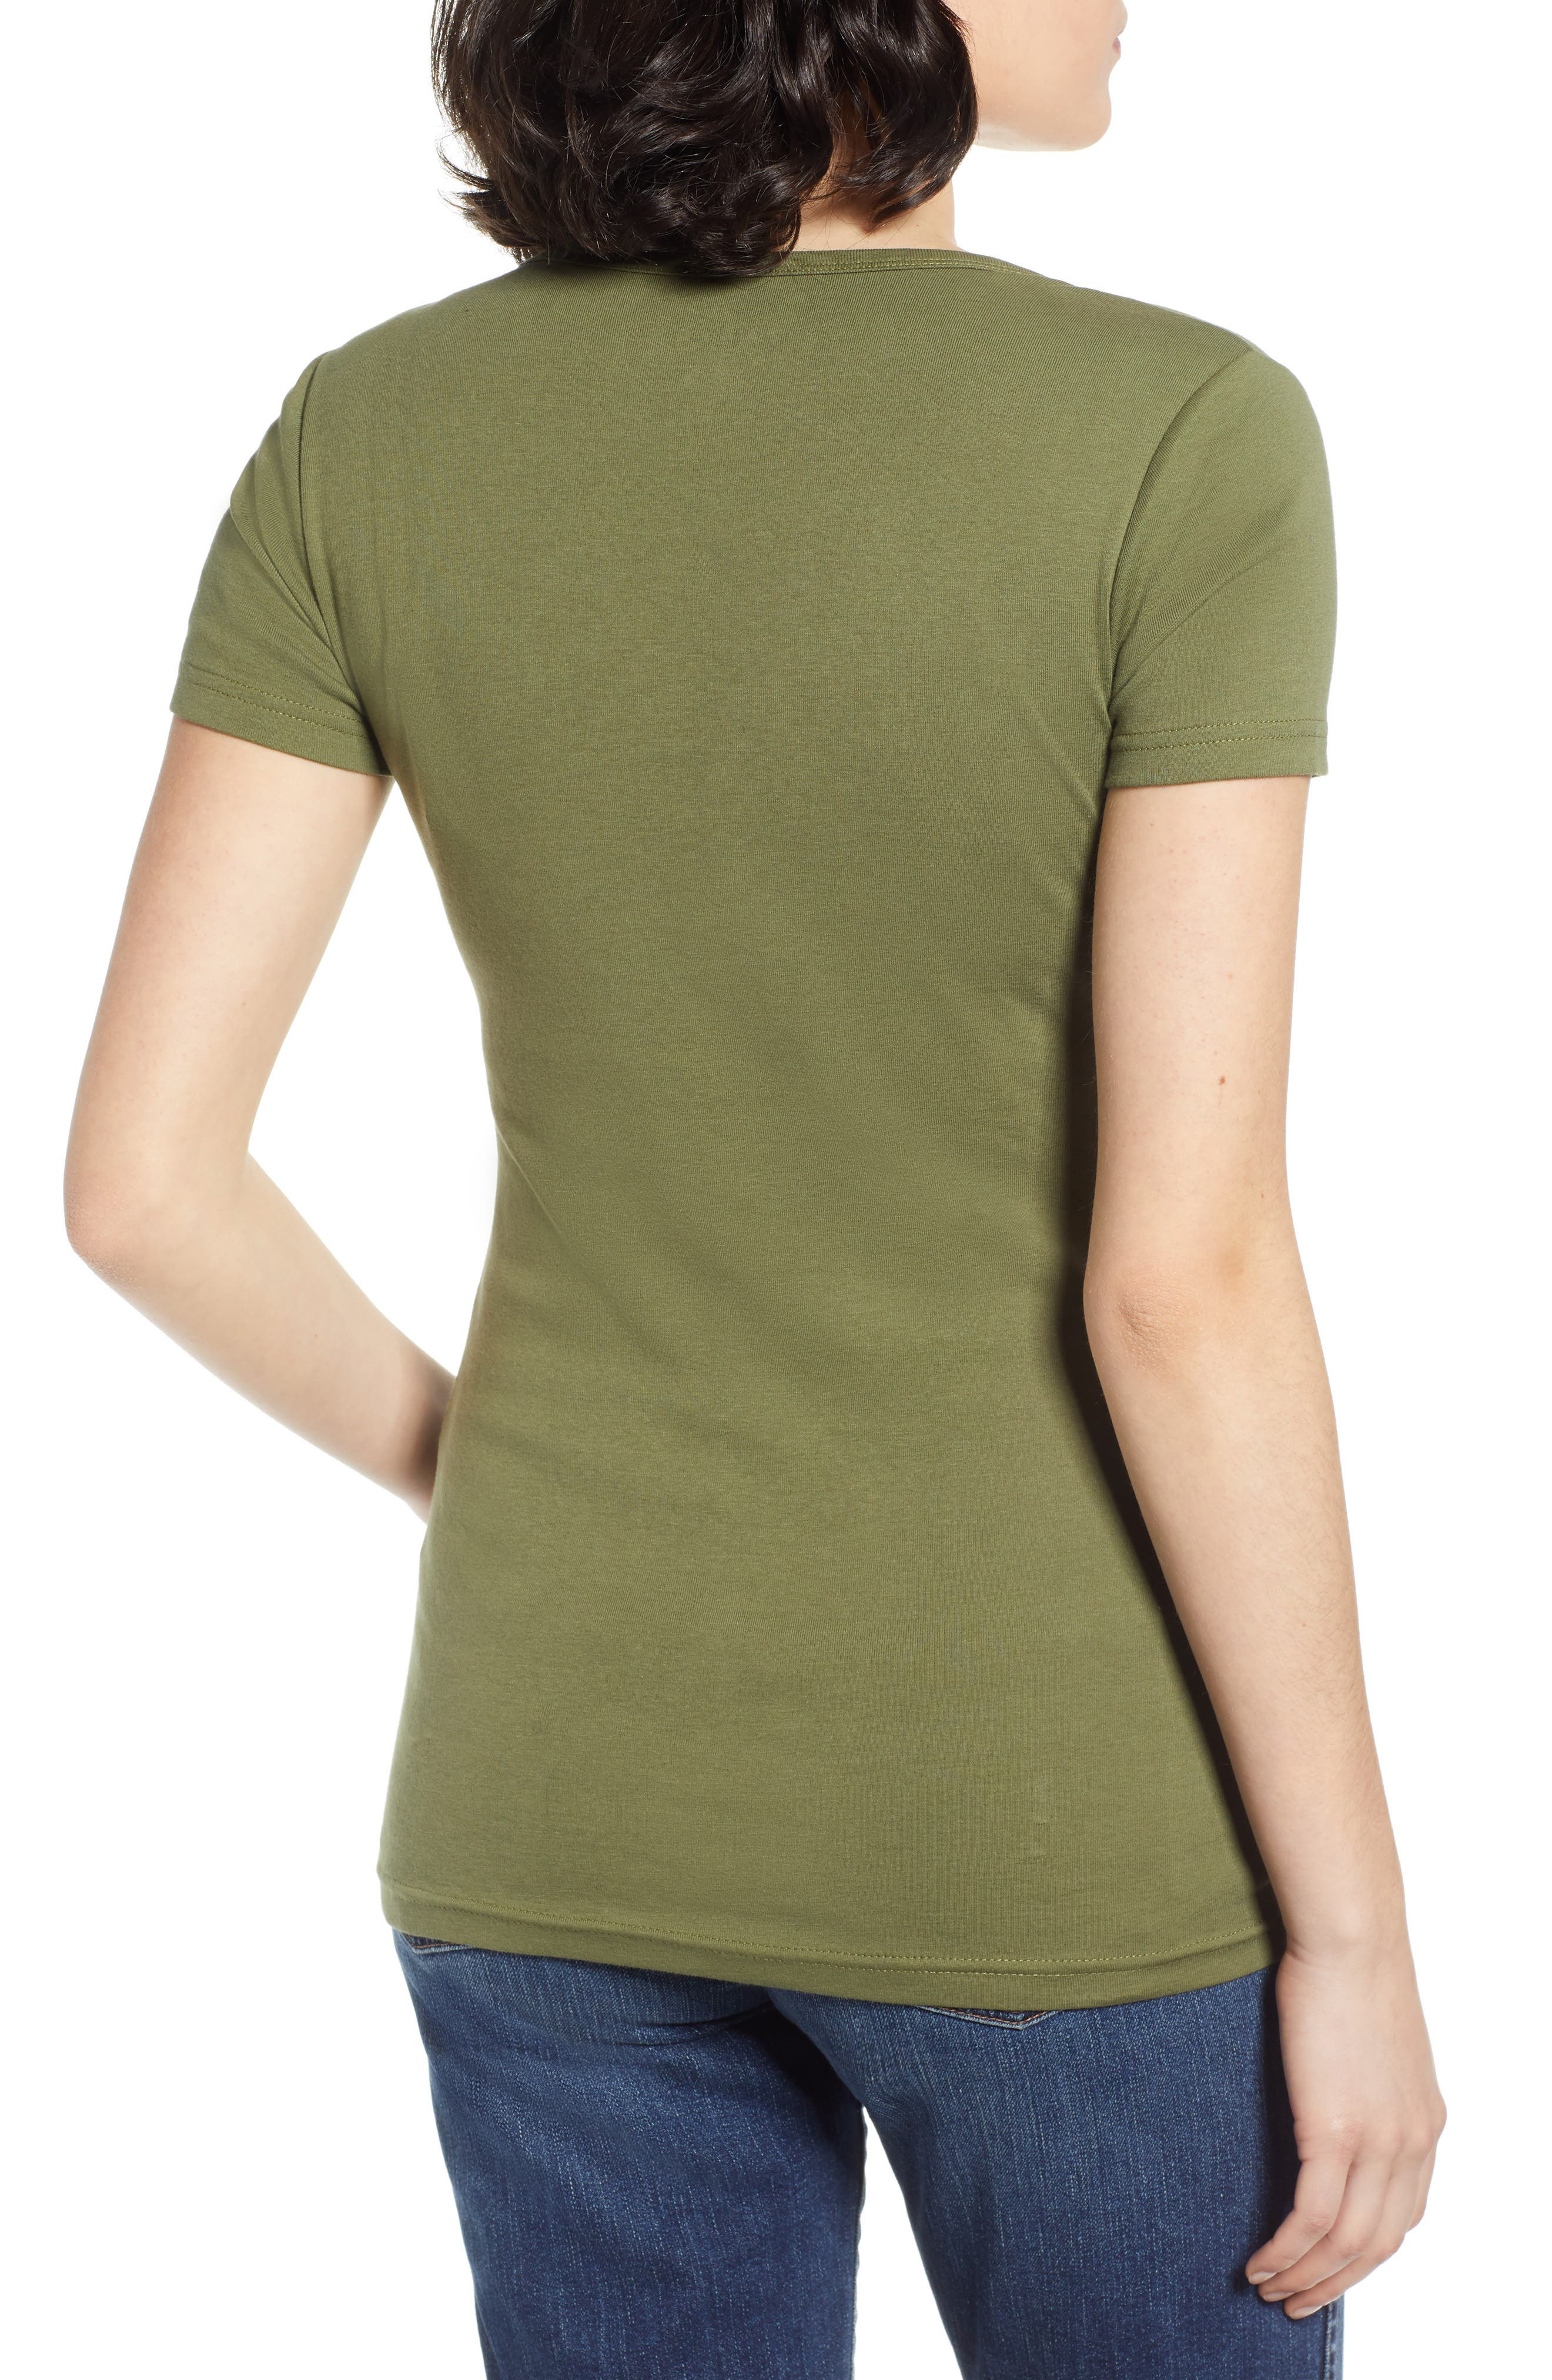 0c5a4be5 New Women's Tops, Blouses and Tees | Nordstrom